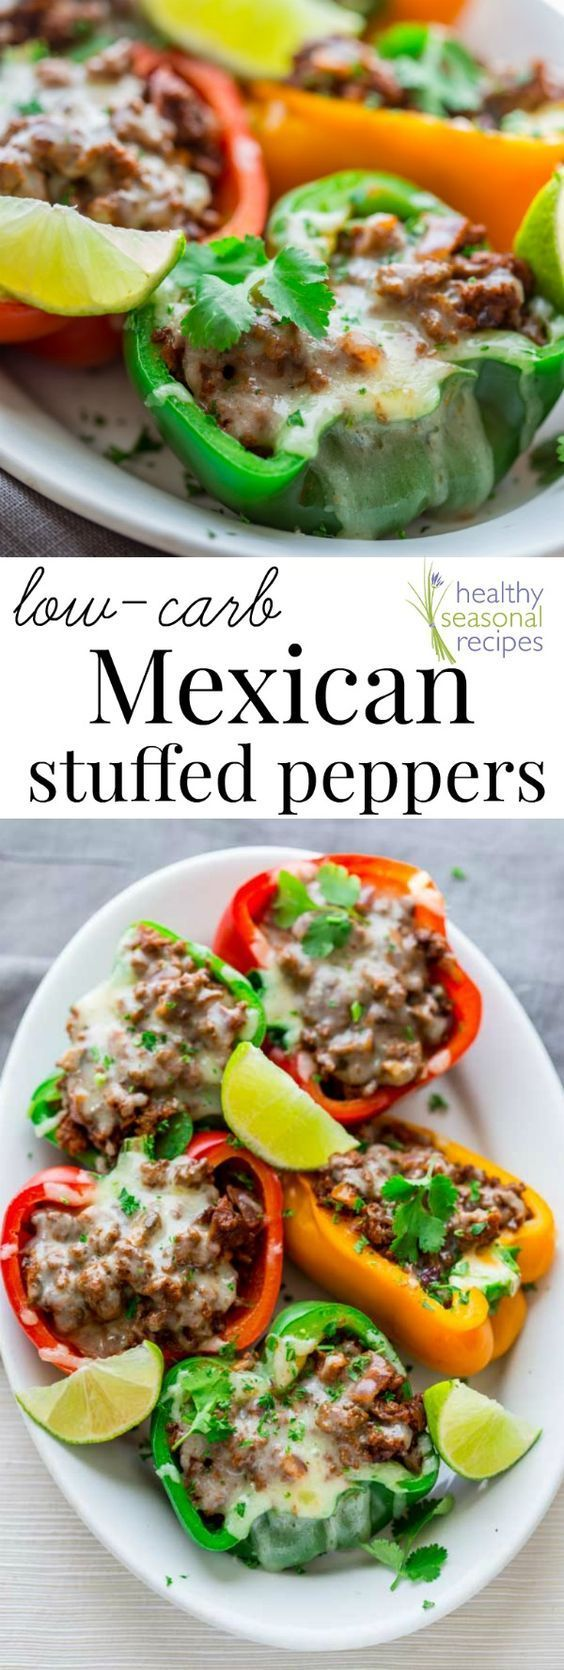 Blog post at Healthy Seasonal Recipes : These cheesy spicy Mexican stuffed bell peppers come together in only 20 minutes for a low-carb, gluten-free and totally delicious weeknight[..] // Food recipe ideas